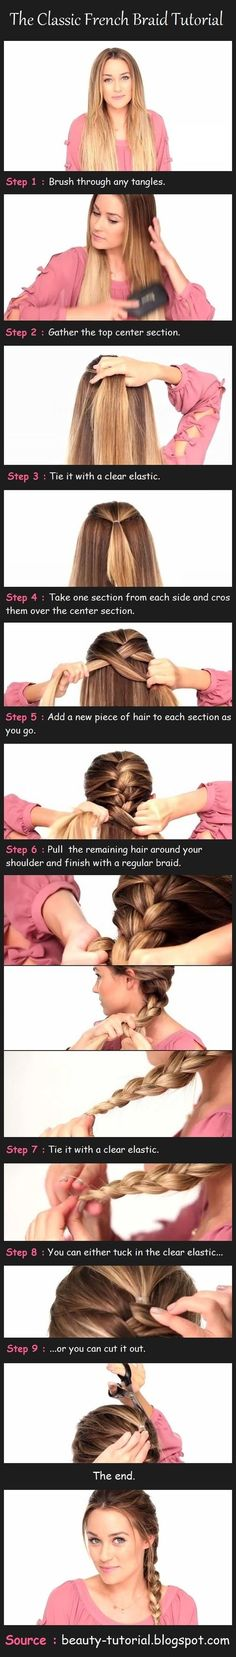 DIY Braided Hair Tutorials for Winter The Classic French Braid Step-By-Step Pictorial - It's all about using a clear plastic hair tie!The Classic French Braid Step-By-Step Pictorial - It's all about using a clear plastic hair tie! My Hairstyle, Pretty Hairstyles, Braided Hairstyles, Sport Hairstyles, Wedding Hairstyles, Makeup Hairstyle, Hairstyle Ideas, Easy Little Girl Hairstyles, Princess Hairstyles